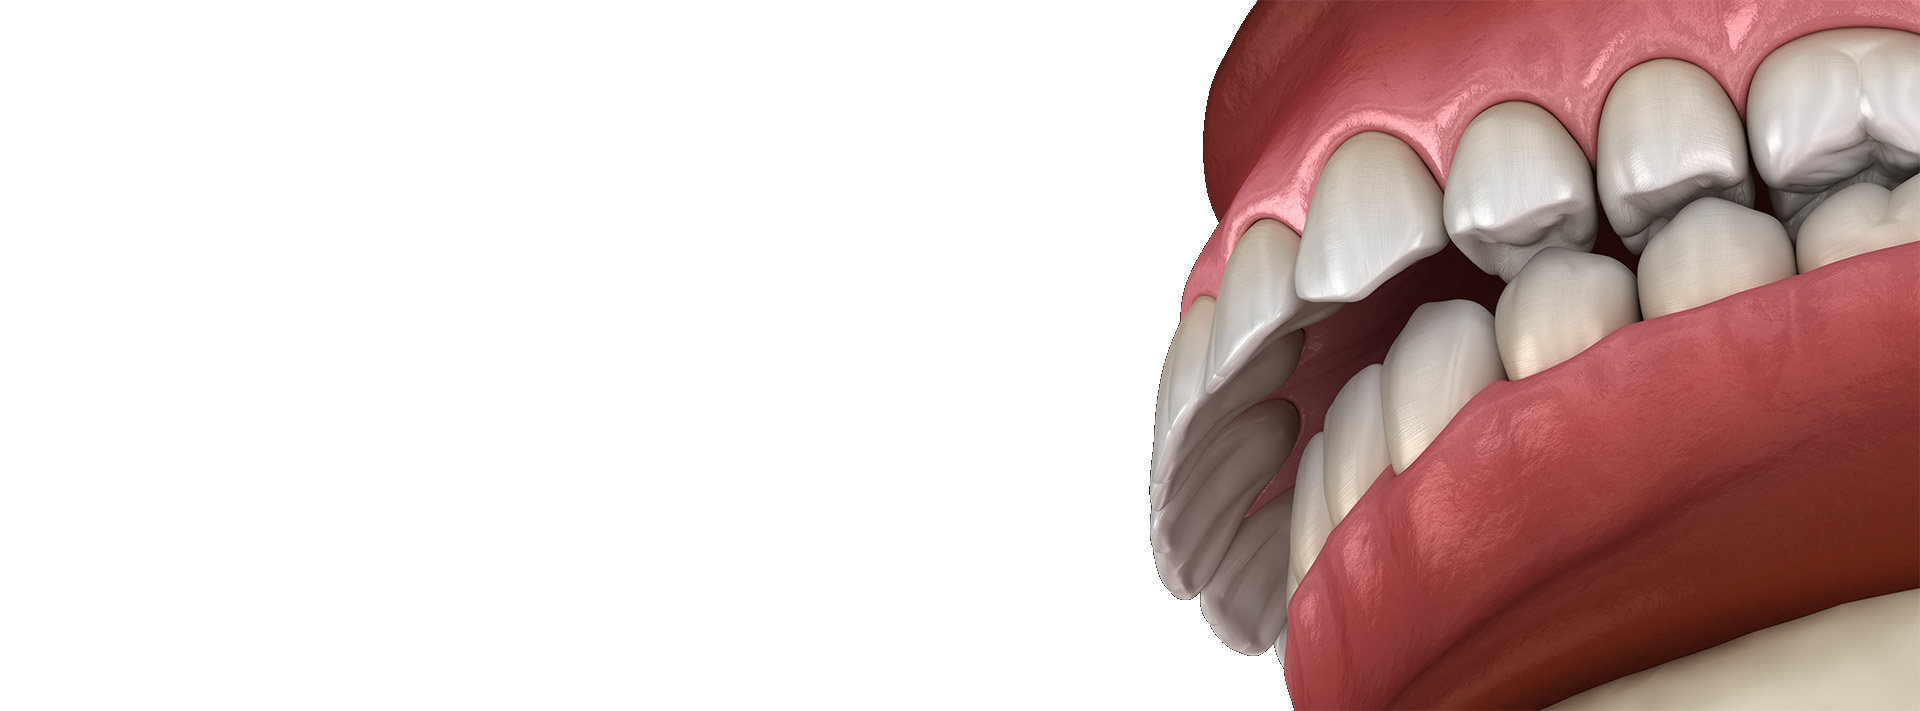 TMJ and Occlusion Course 19-20 June 2020